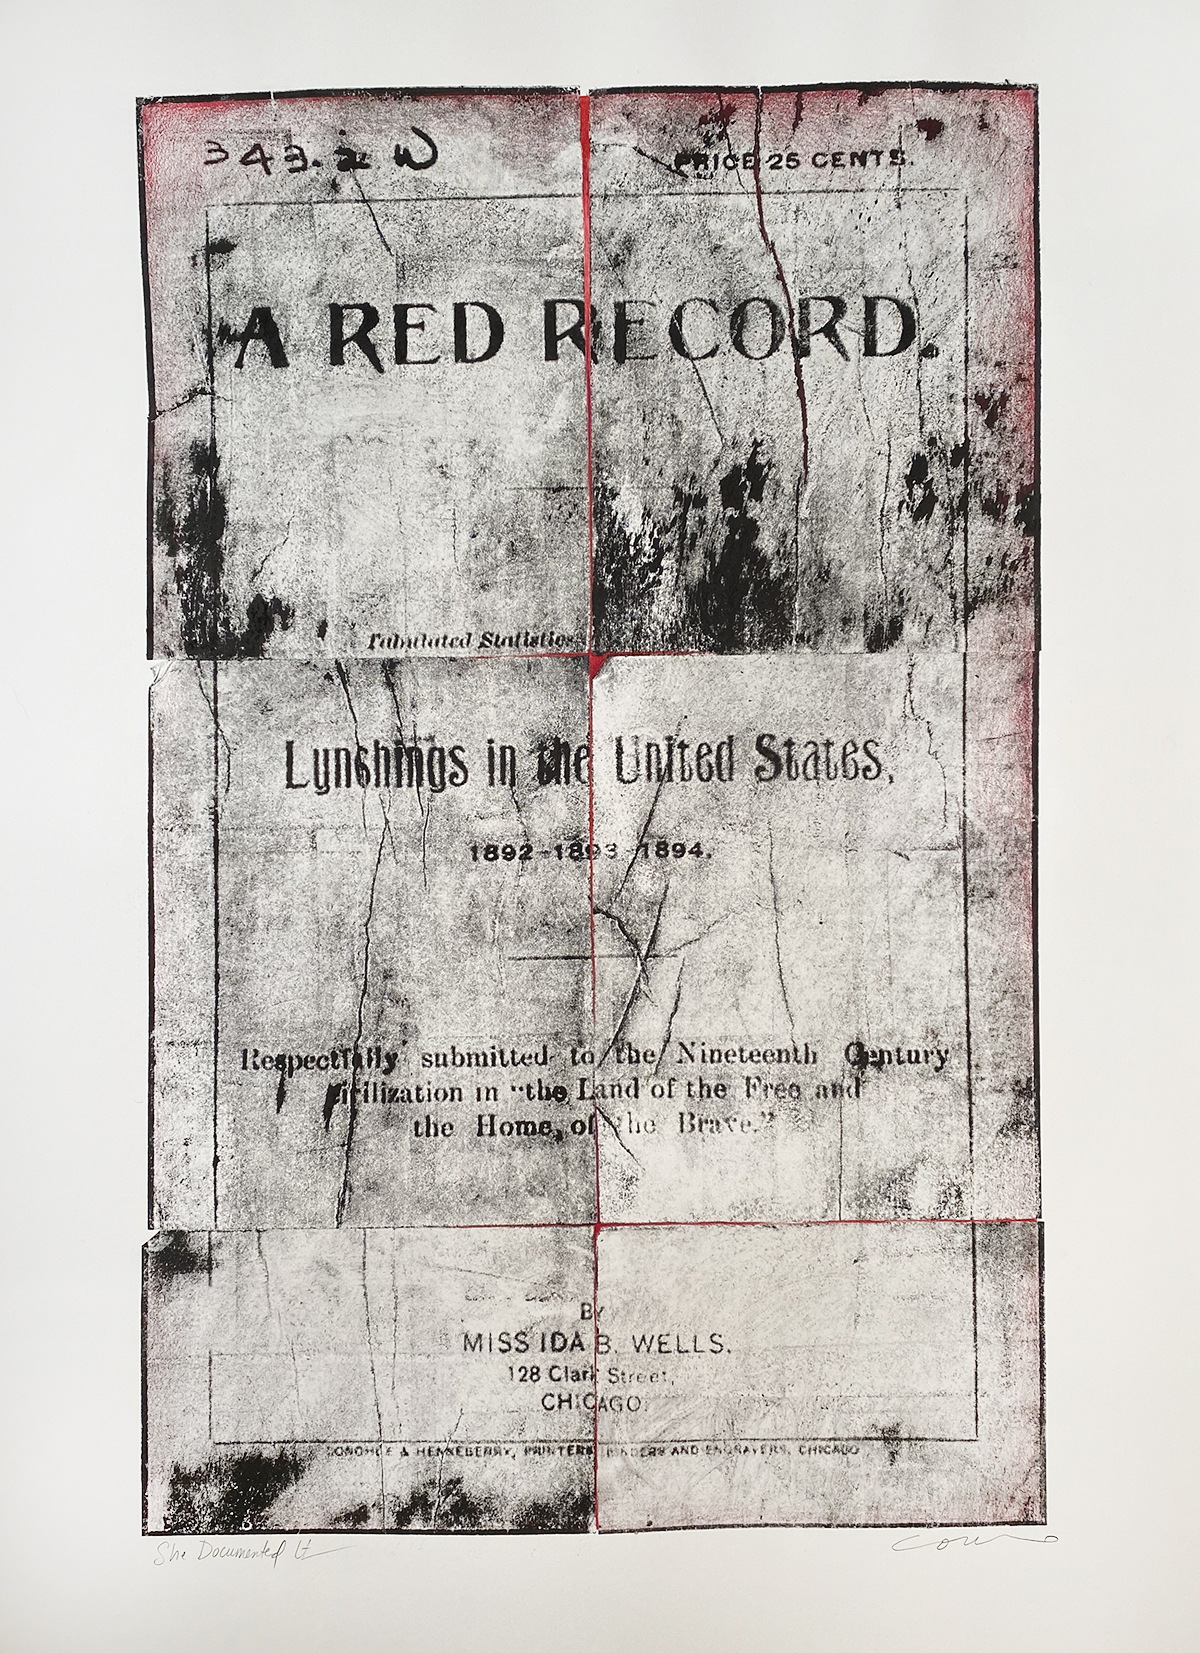 She Documented it: A Red Record